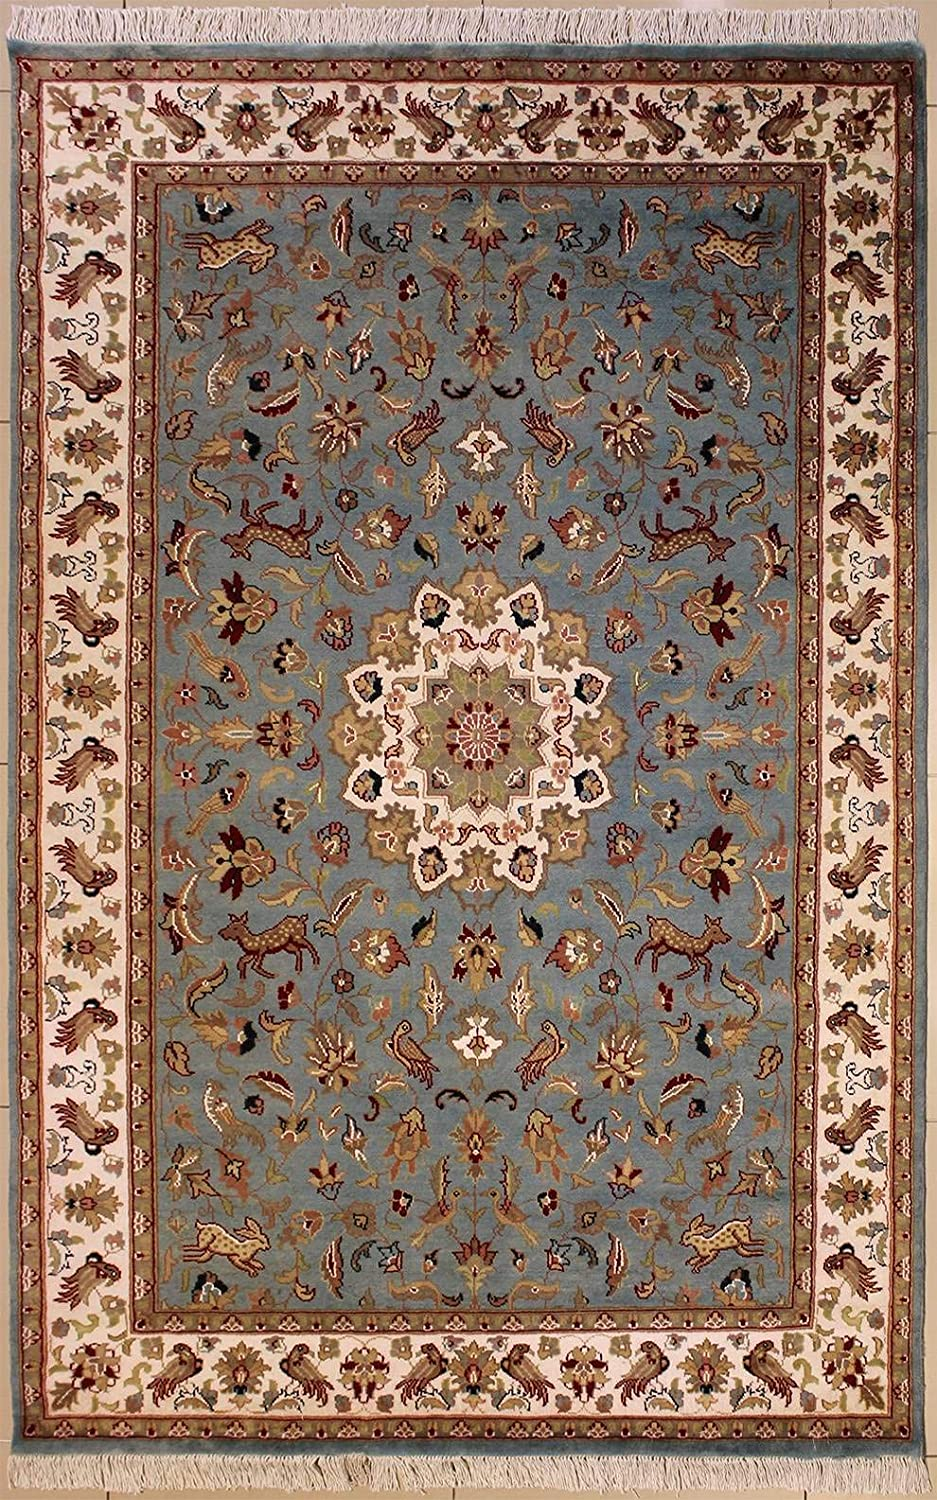 RugsTC 5'1 x 8'3 Pak Persian Area Rug with Silk & Wool Pile - Pictorial Hunting Shikargah Design   100% Original Hand-Knotted in Greenish Blue,Ivory,Beige Colors   a 5x8 Rectangular Rug